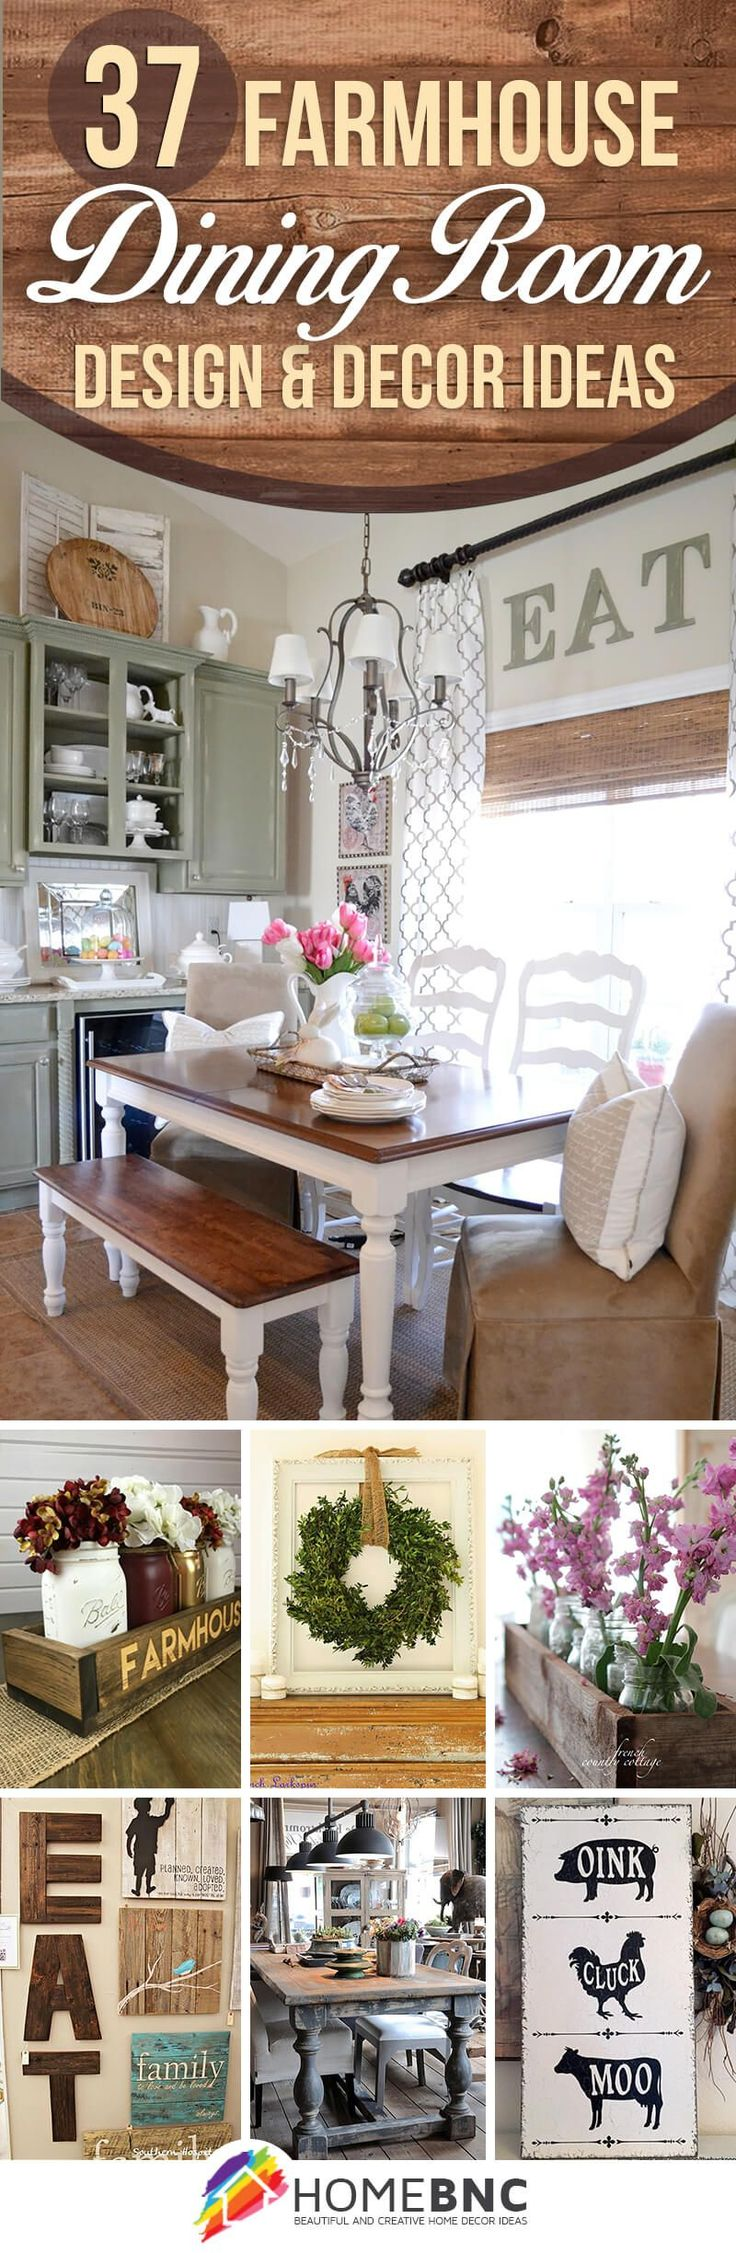 Timeless Decorating Style 17 Best Ideas About Farmhouse Decor On Pinterest Farmhouse Style